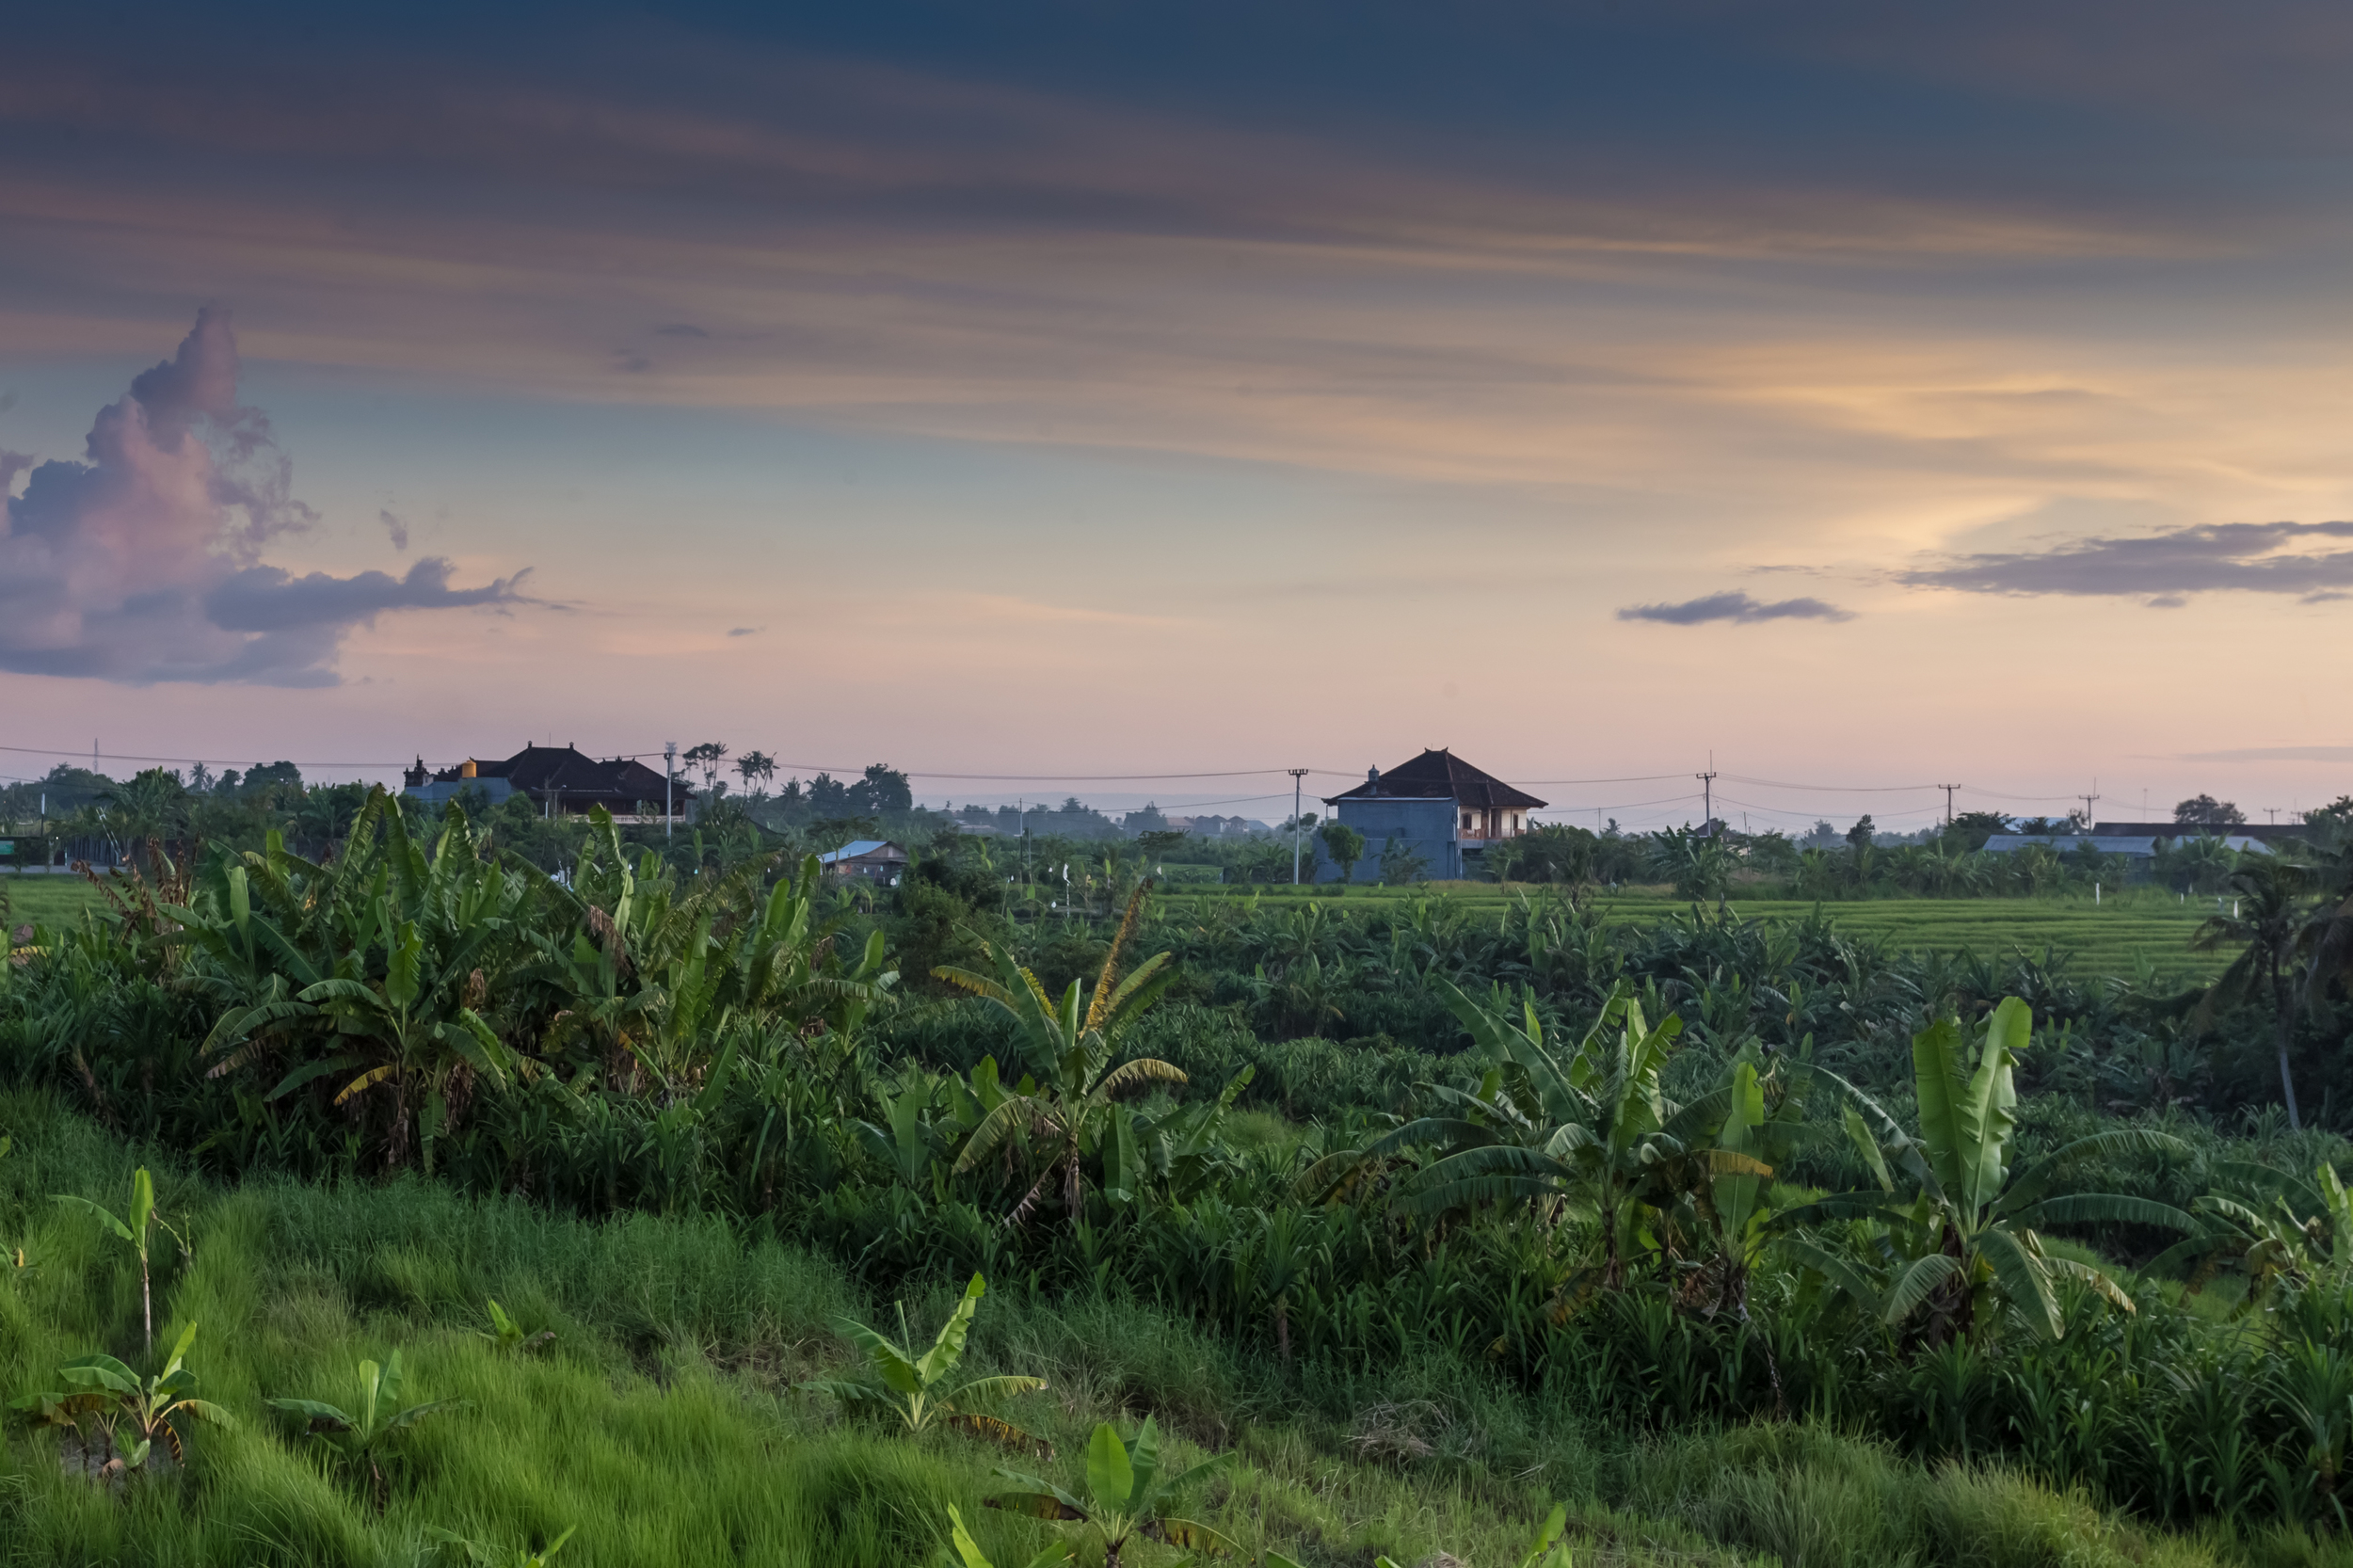 Omahkoe from a distance, surrounded by the paddy fields!